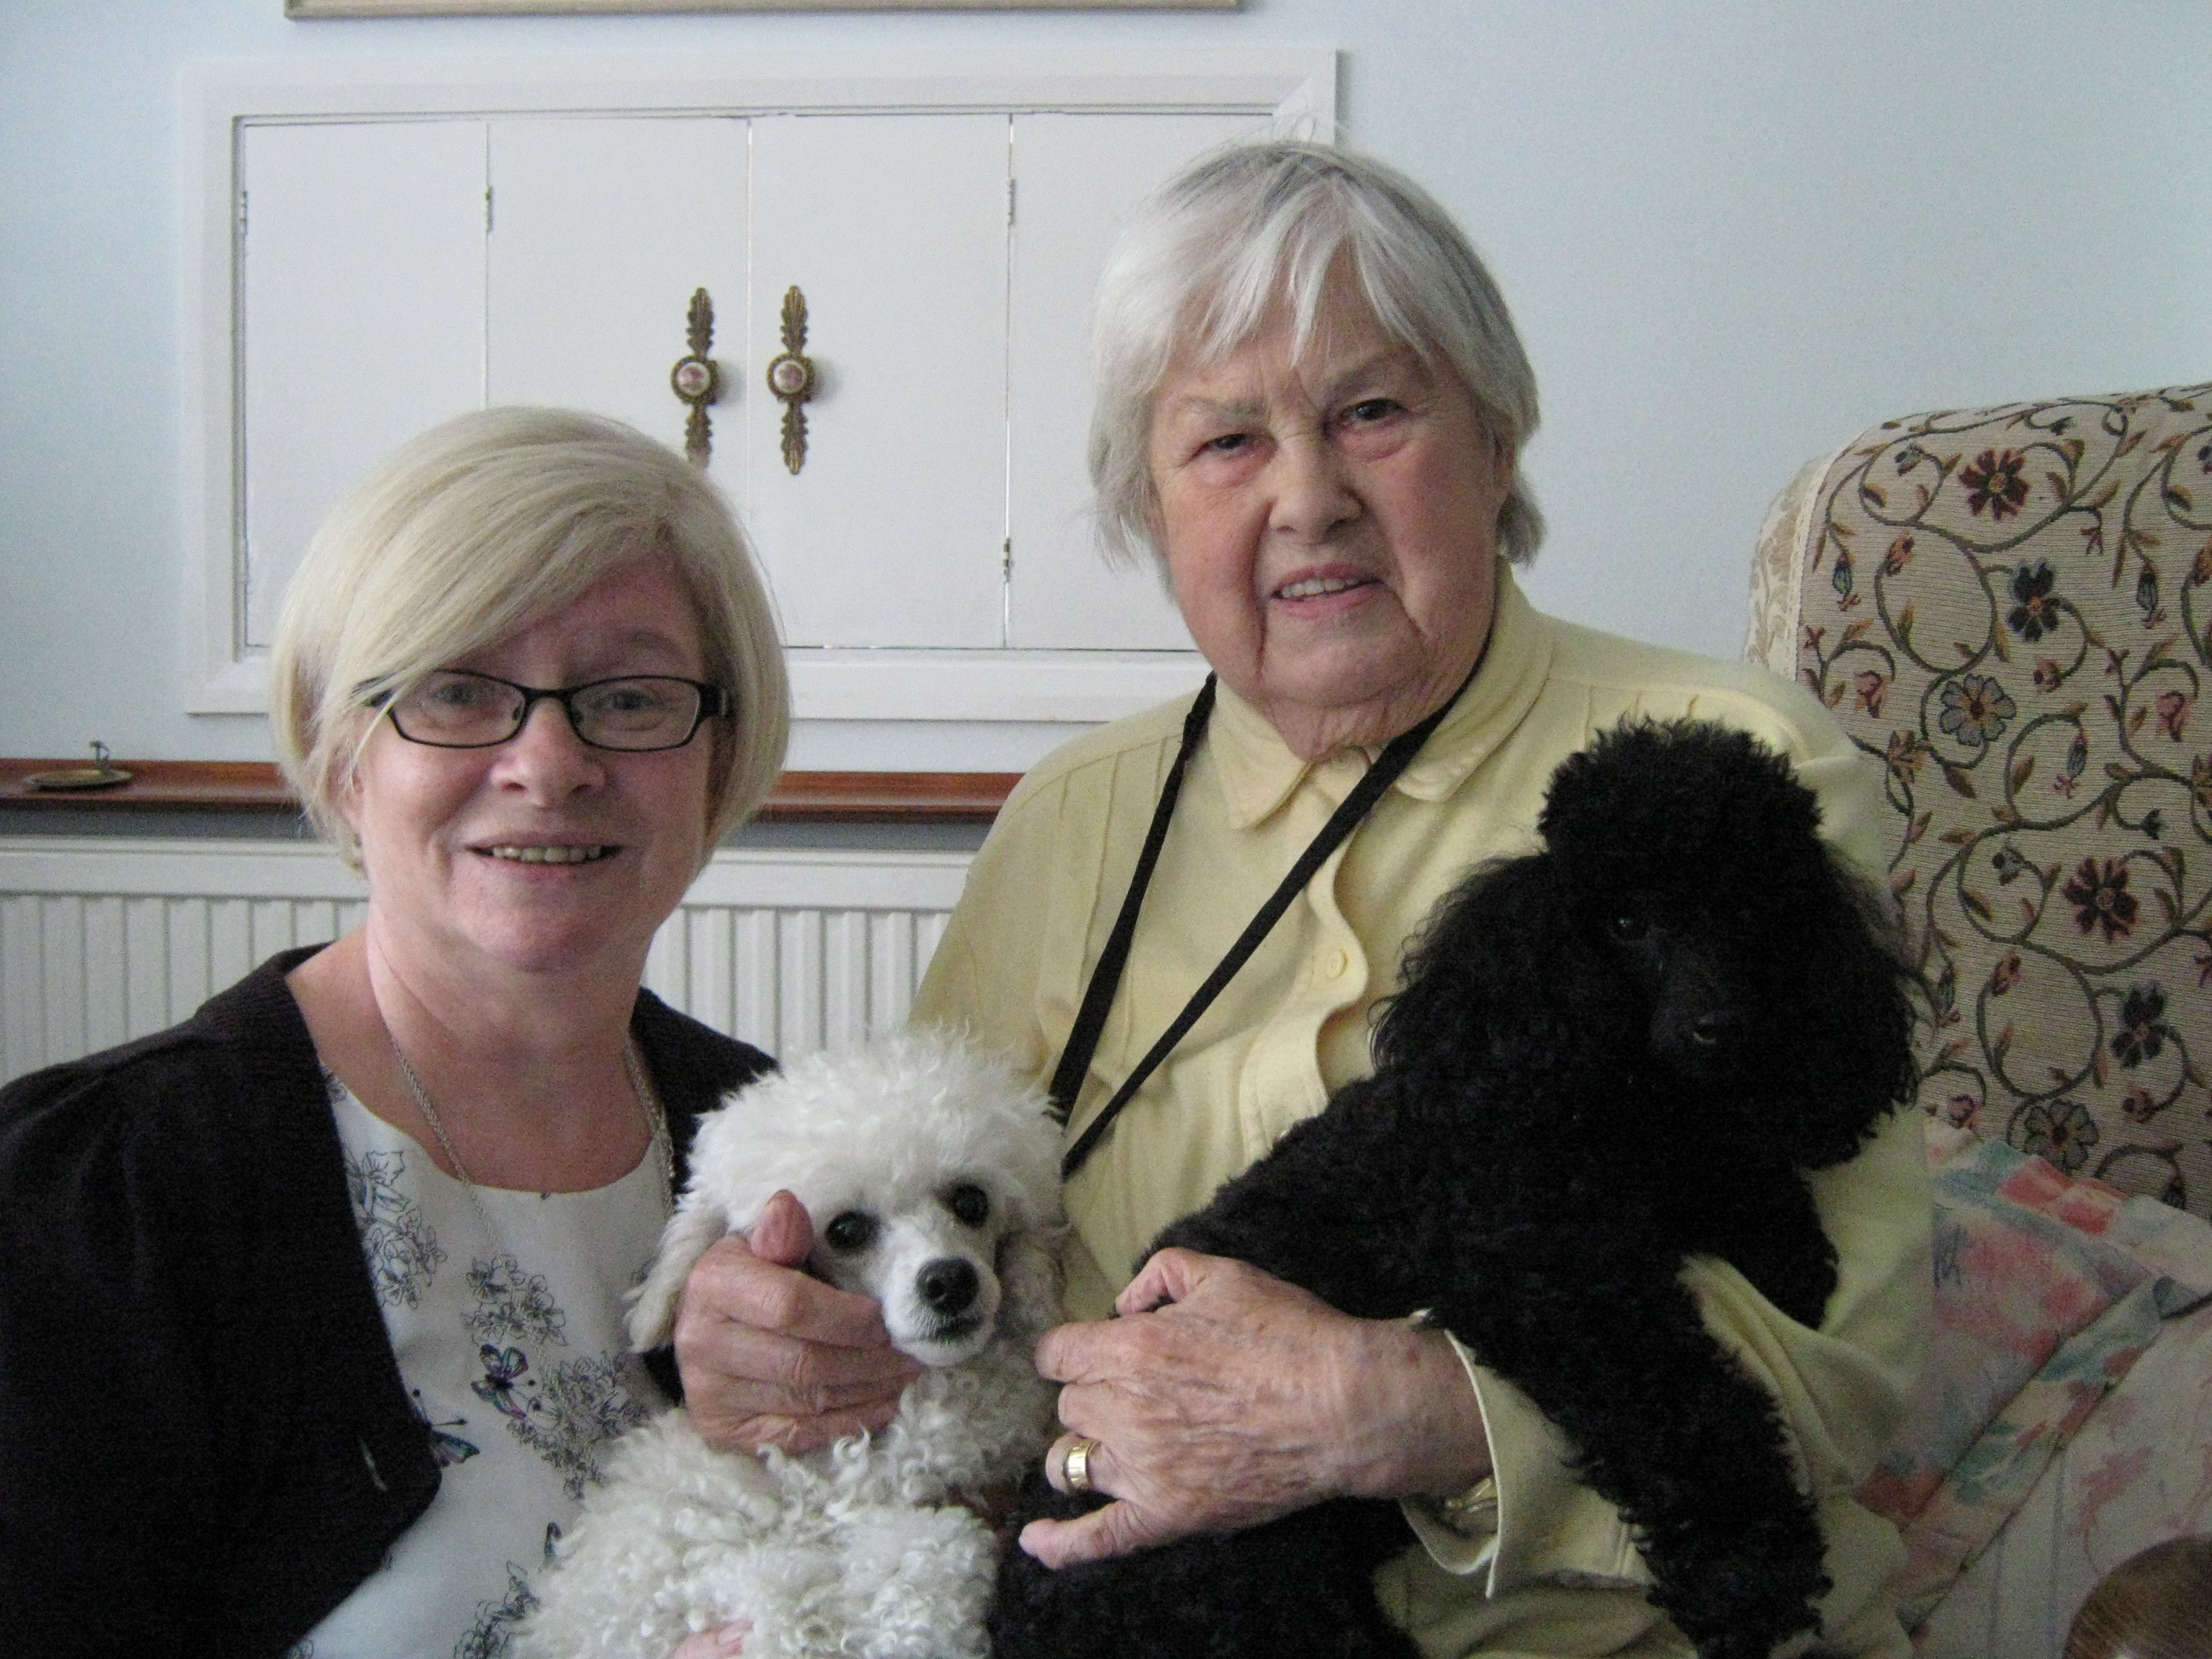 Home Instead Ruislip and Harrow Care Manager Marie Cavanagh with her black Poodle Annie and elderly client Mary Phillips next to her white Poodle Edna